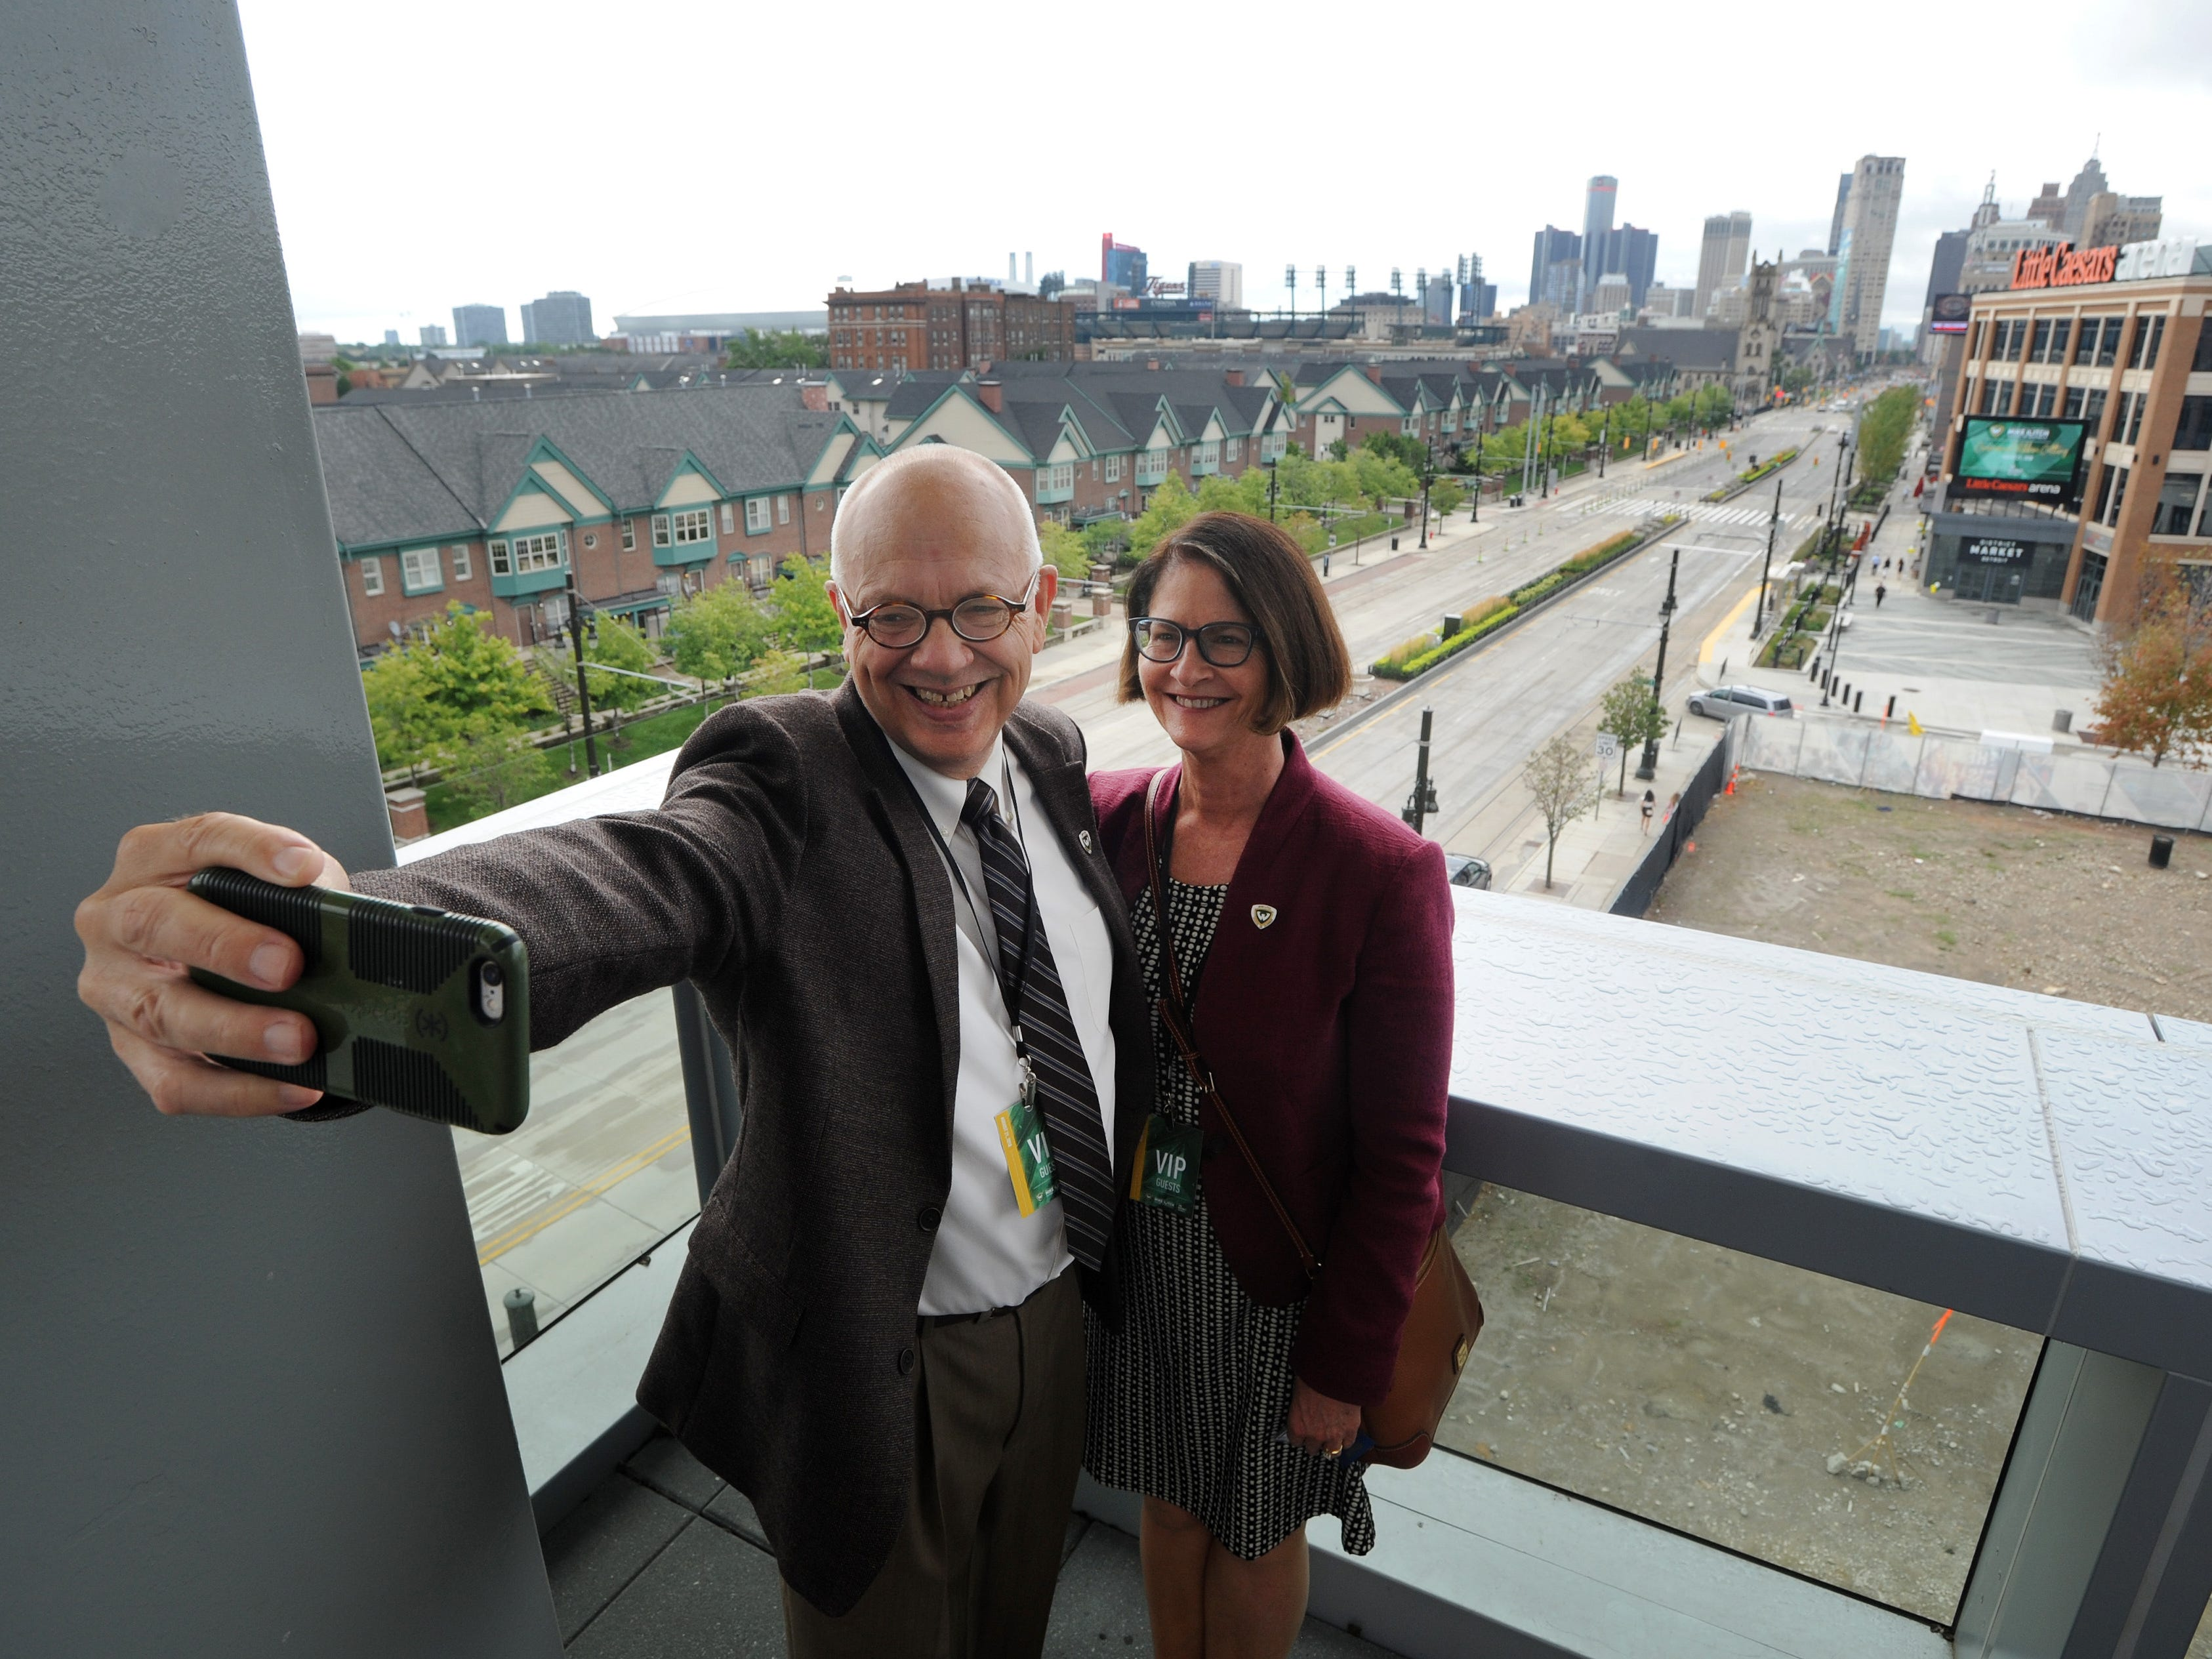 Wayne State University Professor Tim Butler takes a selfie with his wife, Beverly Butler, on the terrace of the Mike Ilitch School of Business.